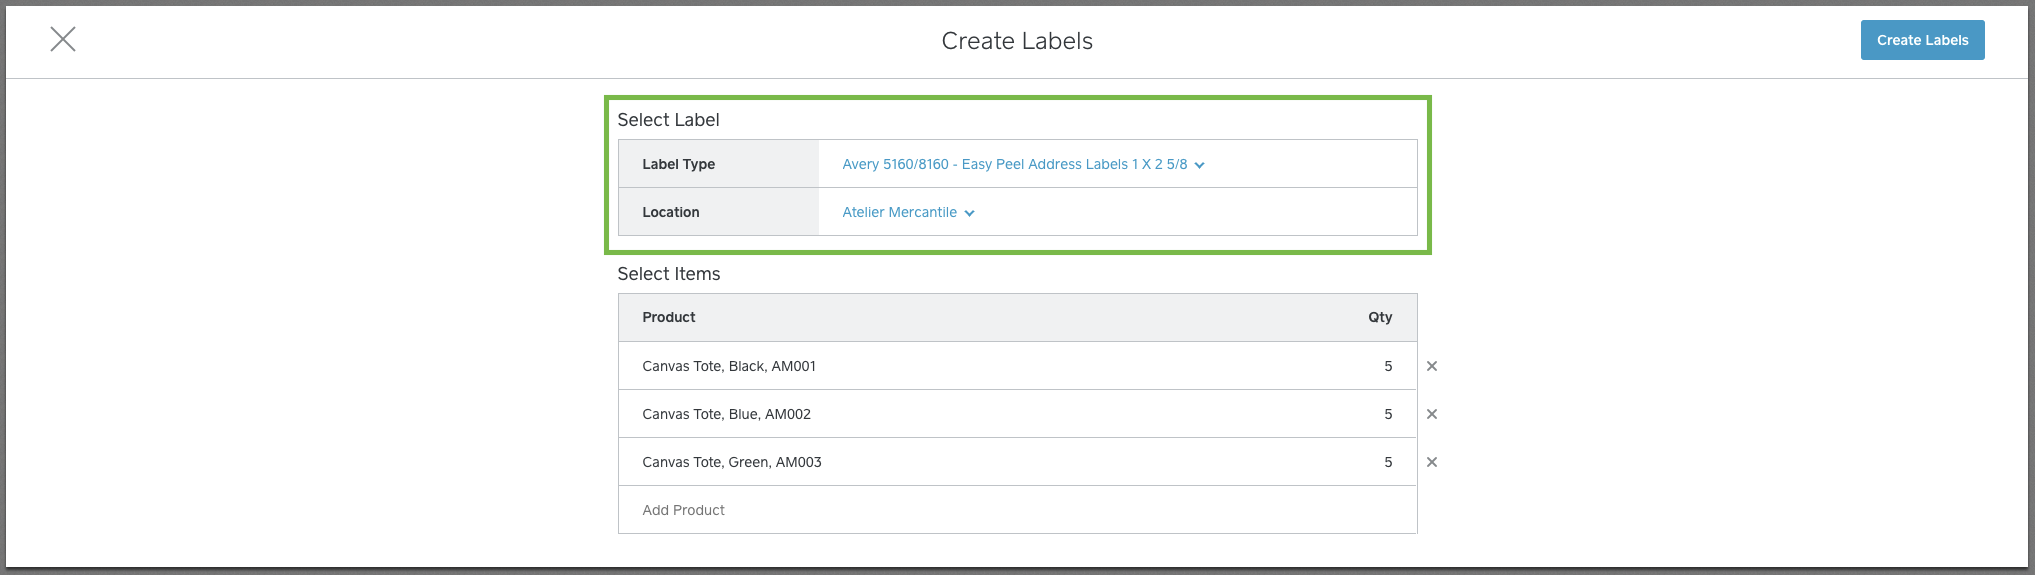 Label Creation Screen in Square Dashboard